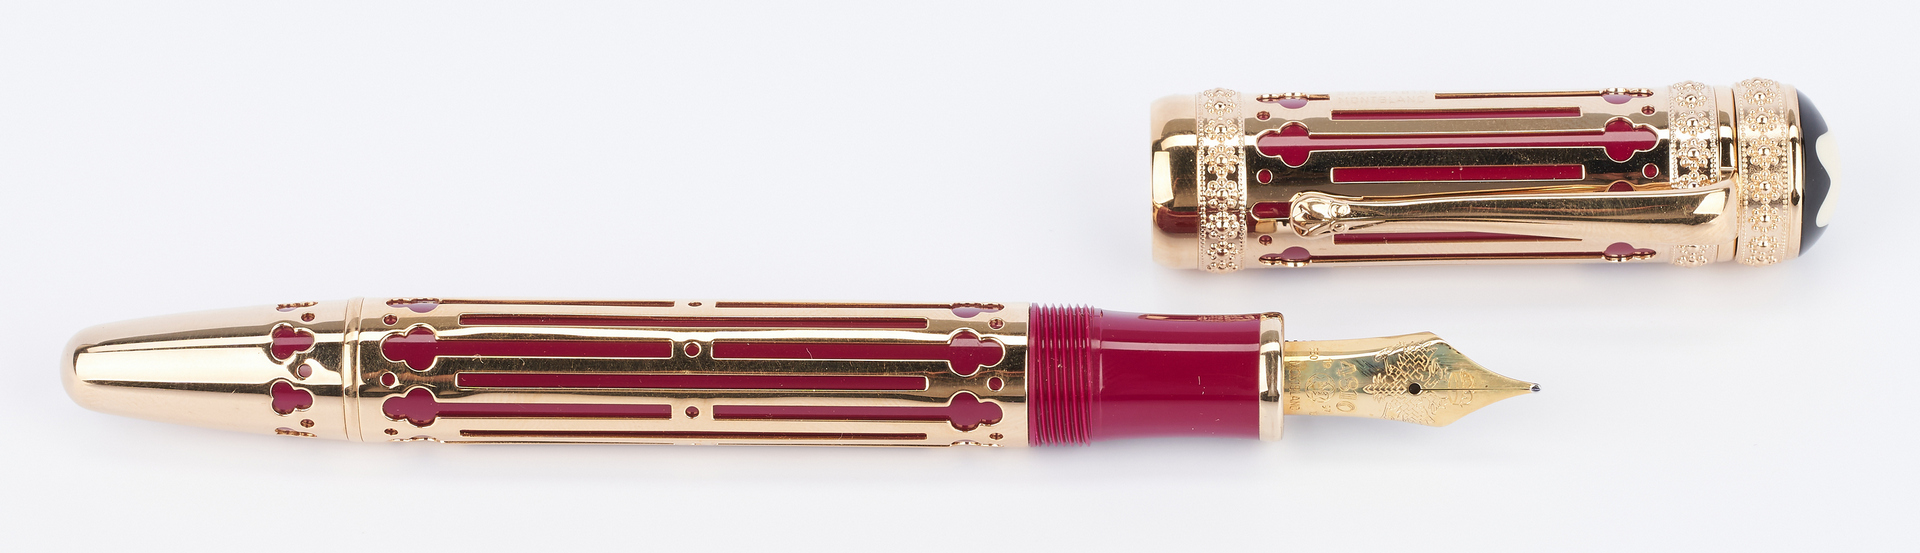 Lot 46: Montblanc Catherine the Great 4810 Fountain Pen